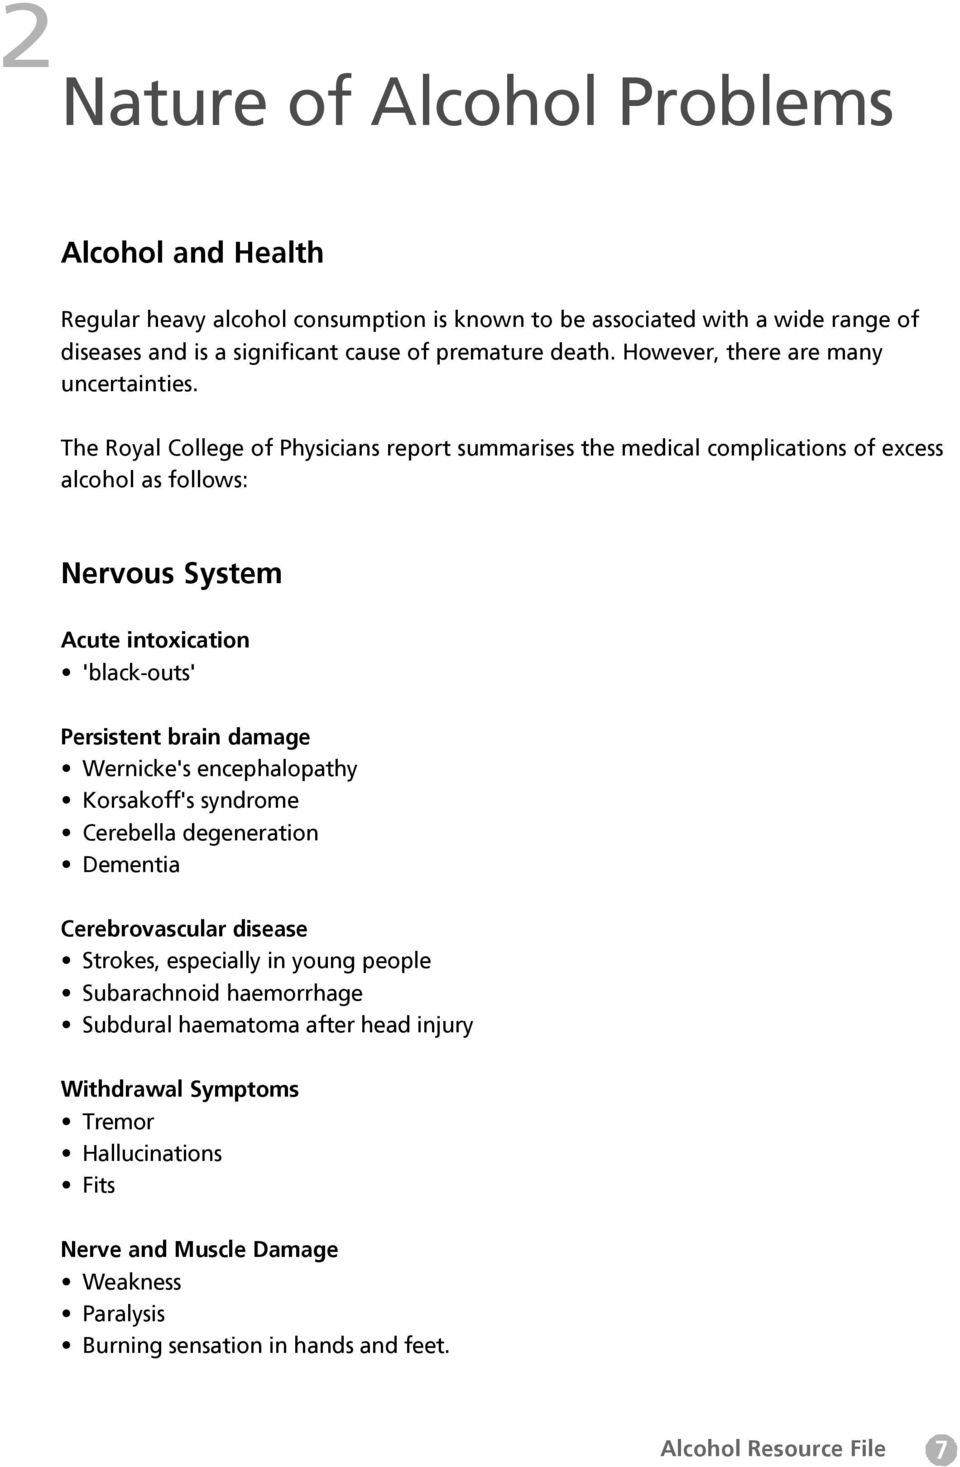 The Royal College of Physicians report summarises the medical complications of excess alcohol as follows: Nervous System Acute intoxication 'black-outs' Persistent brain damage Wernicke's